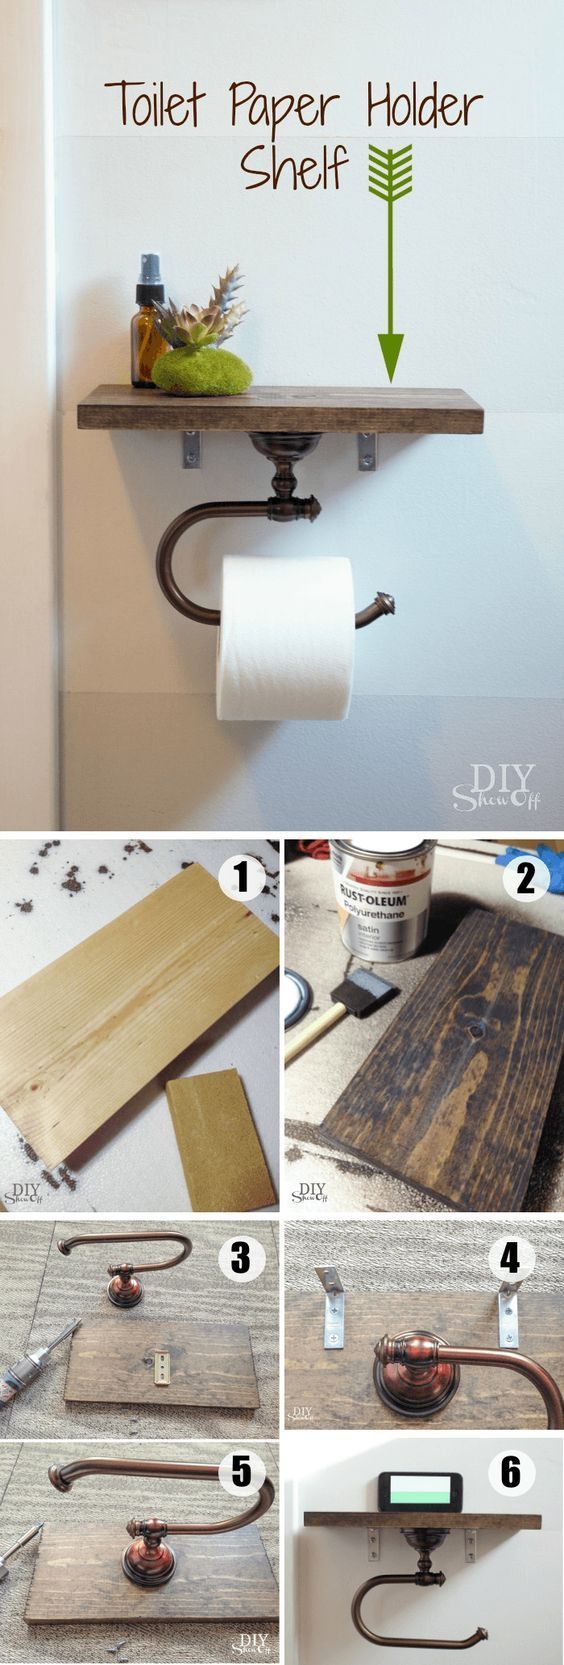 15 Totally Unusual DIY Toilet Paper Holders #diyyarnholder